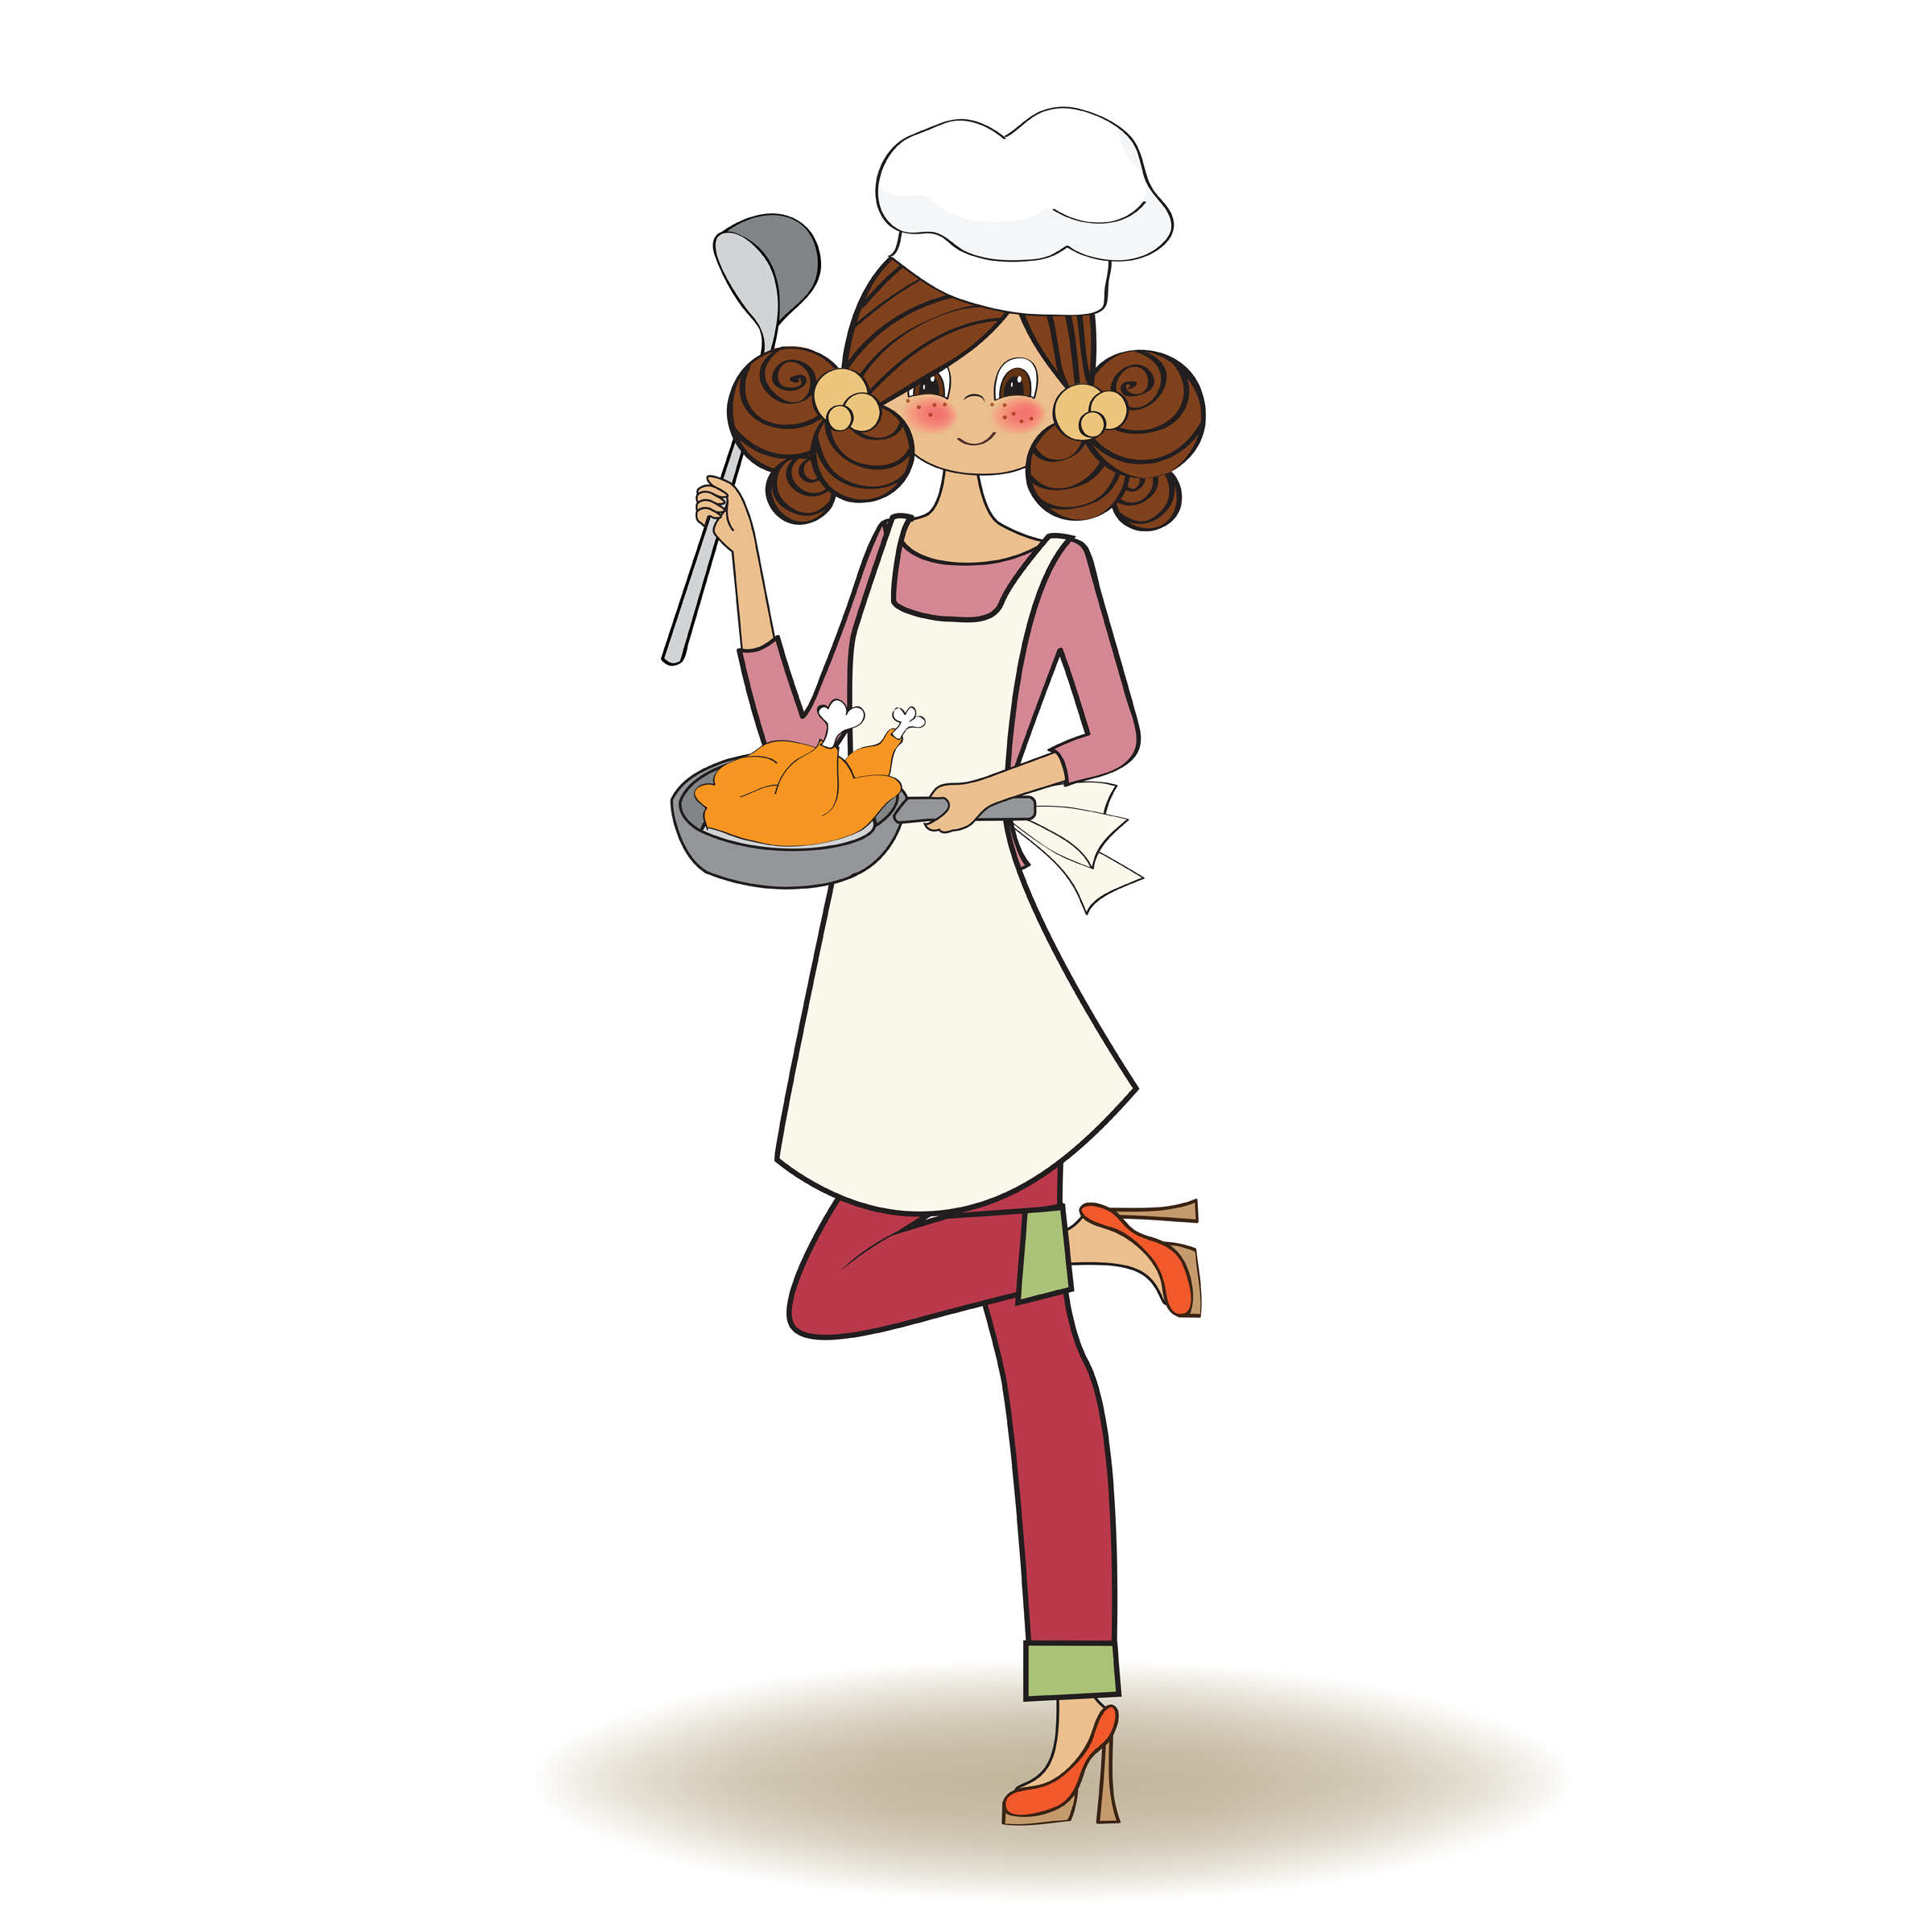 lady chef logo design ideas - photo #38